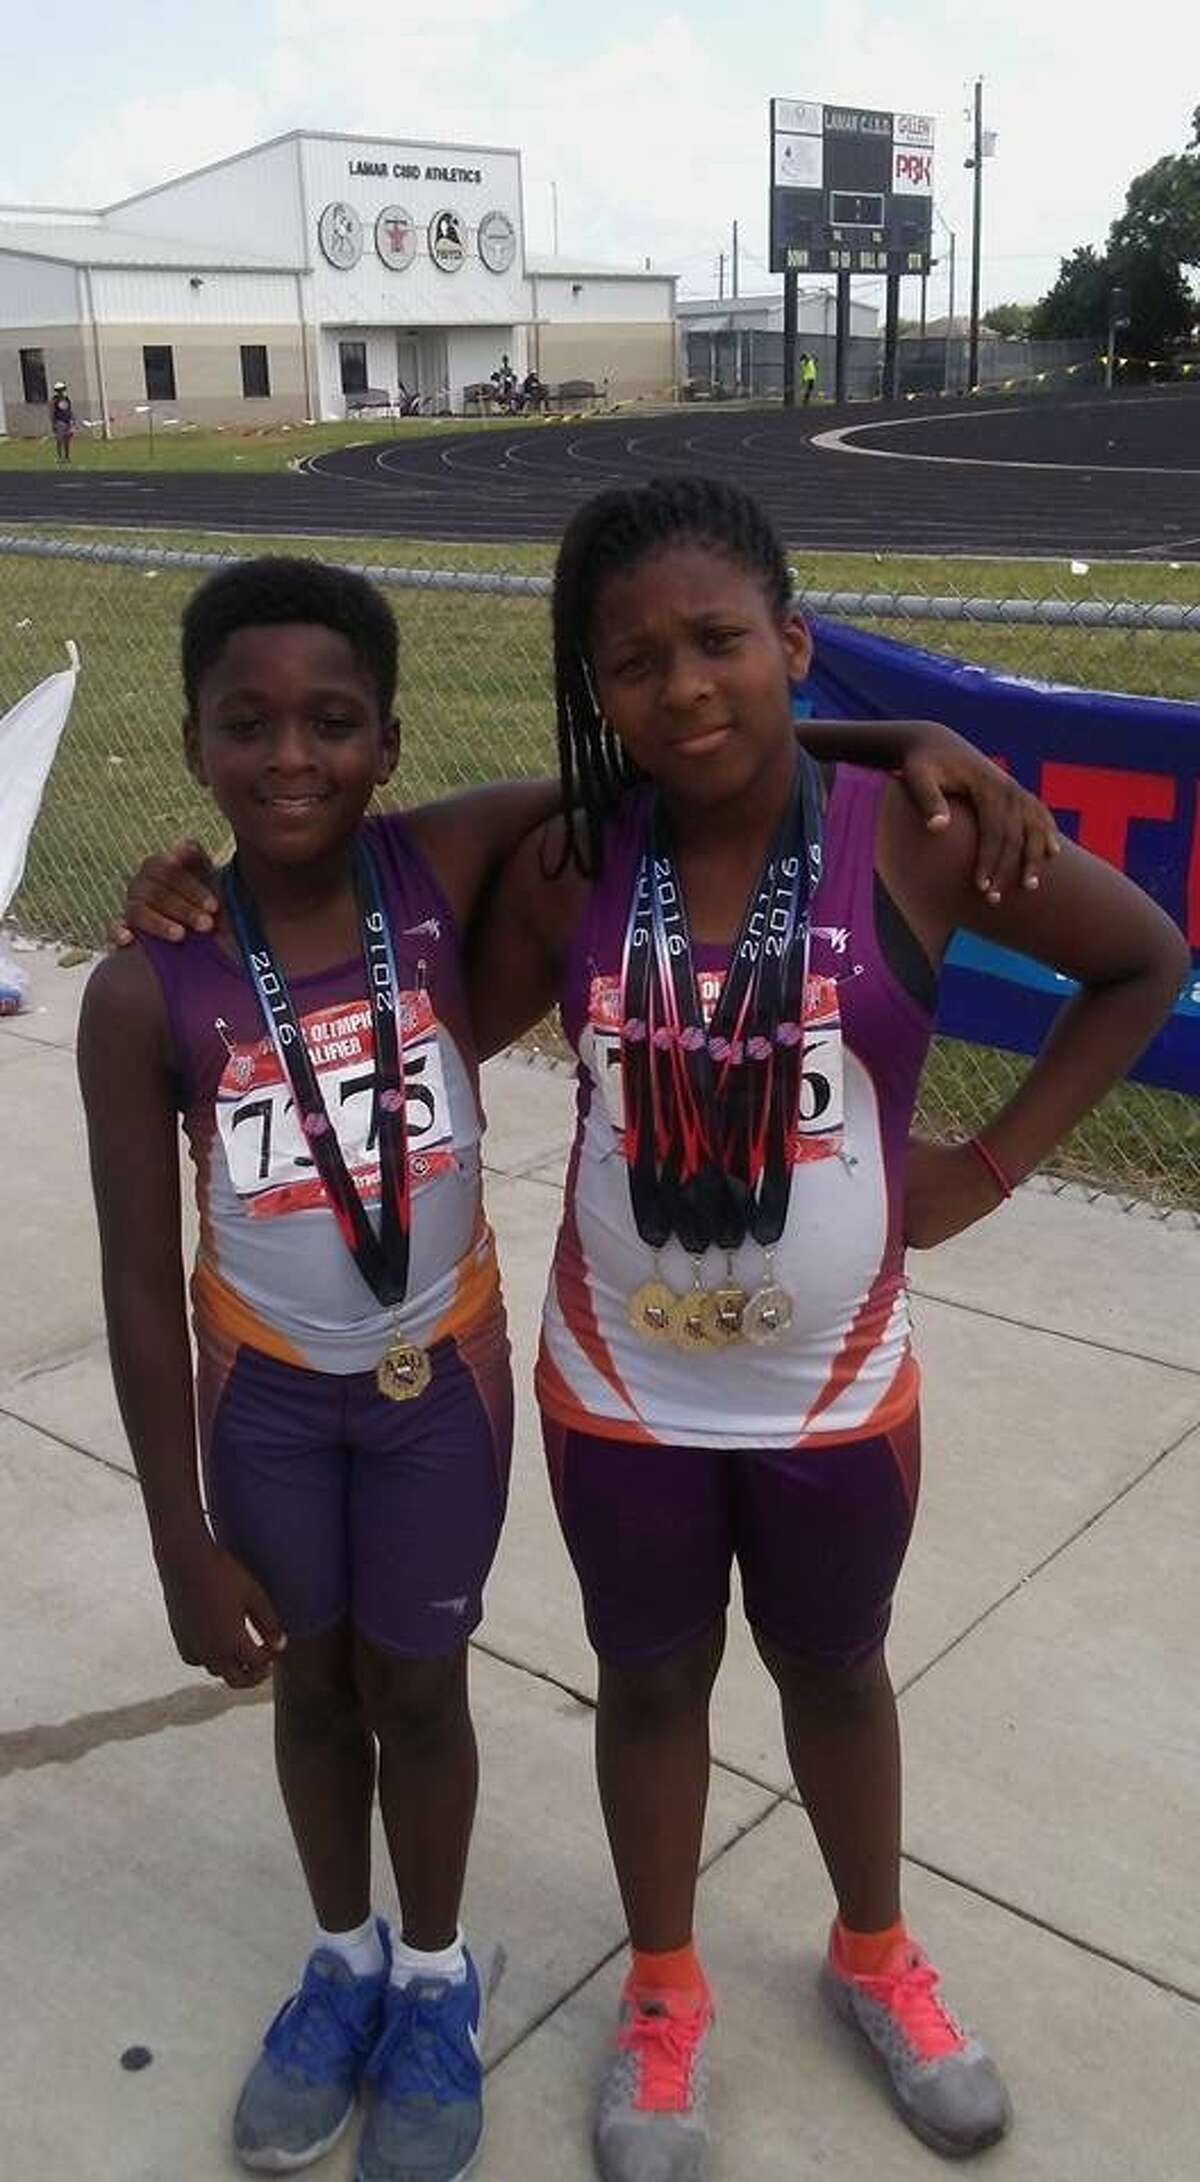 Siblings DaMario Gee (left) and Octavia Gee (right) both won AAU Region 17 championships at the national qualifier June 29-July 2 at Traylor Stadium in Rosenberg.